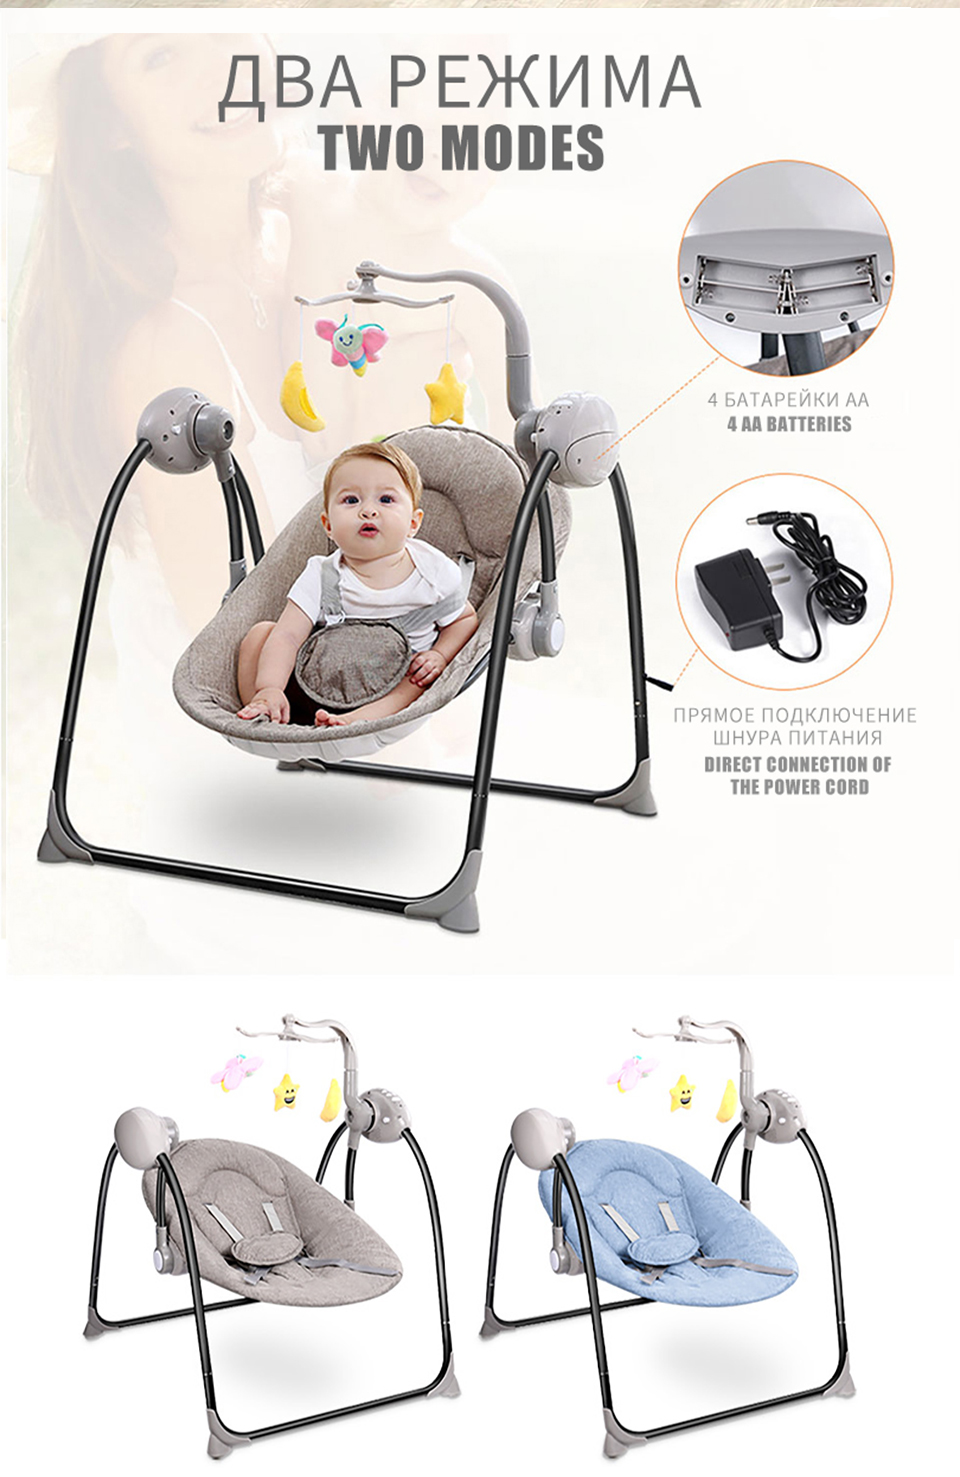 H4d72689c3ce84f56bcb58fb641211bb9d IMBABY New Baby Electric Rocking Chair Cradle Foldable Baby Comfort Recliner for Newborn Bebe Safety Comfort Rocker Swings Chair